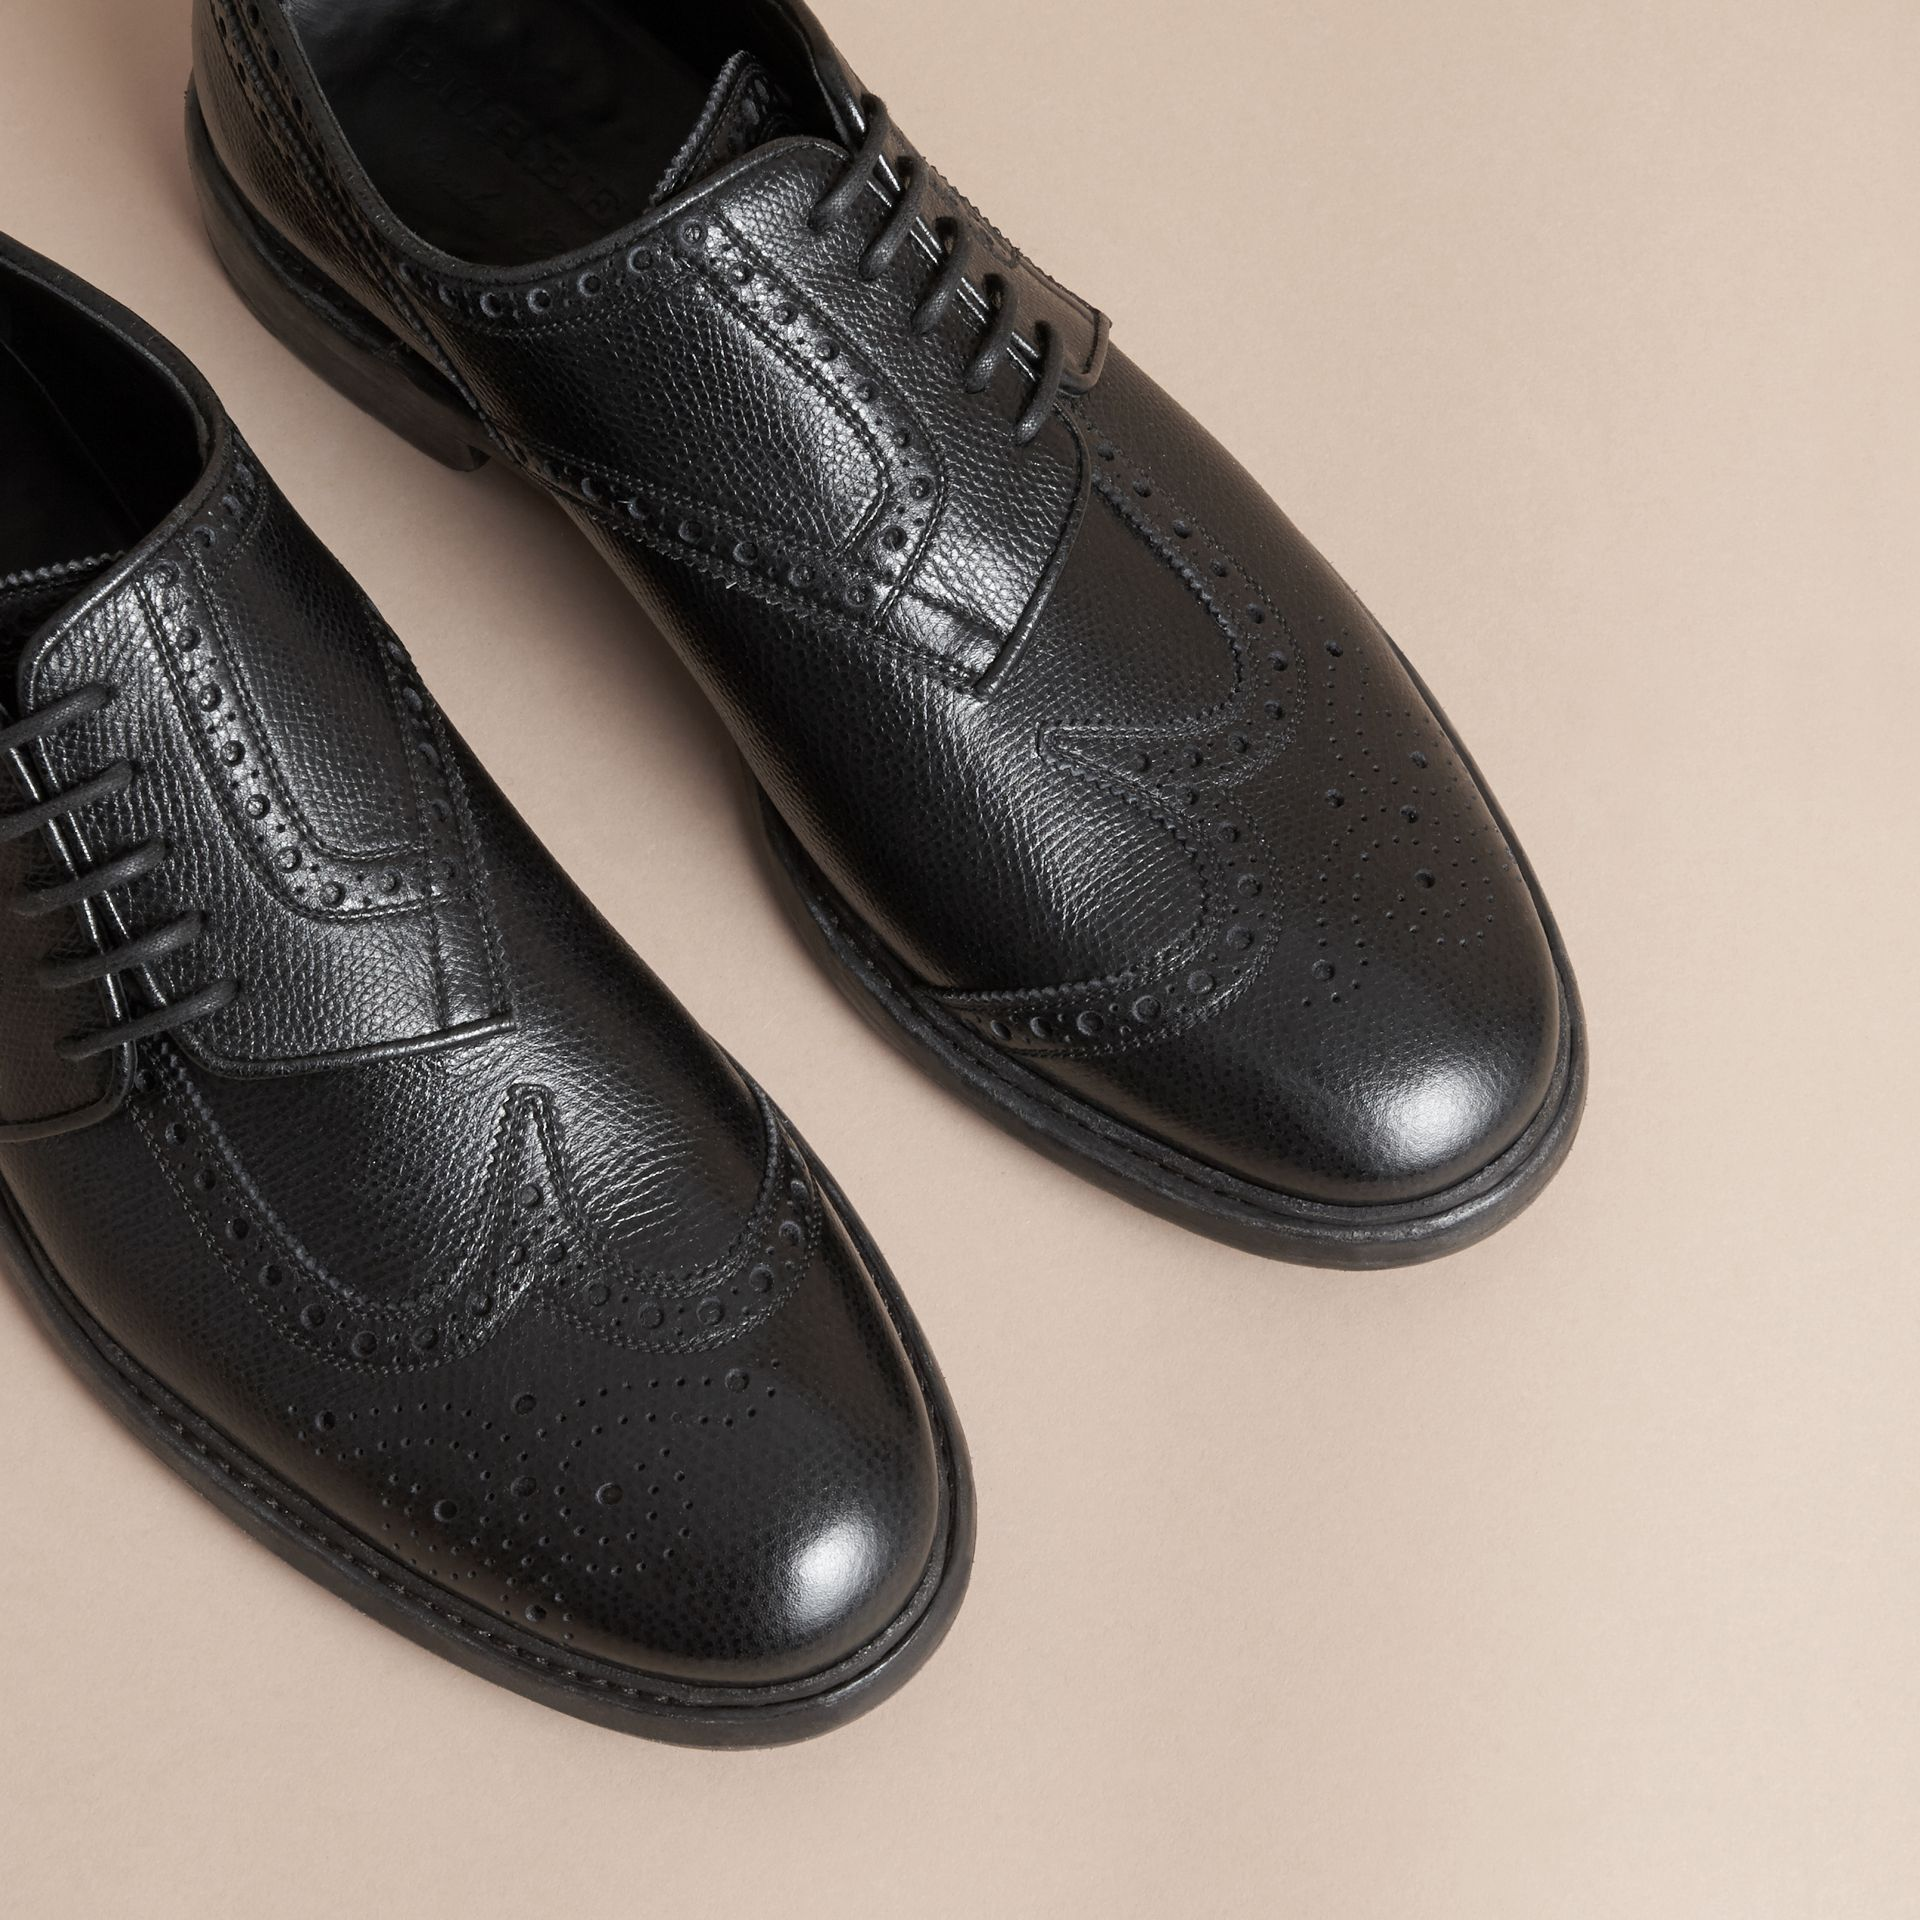 Leather Brogues with Asymmetric Closure in Black - Men | Burberry Canada - gallery image 3